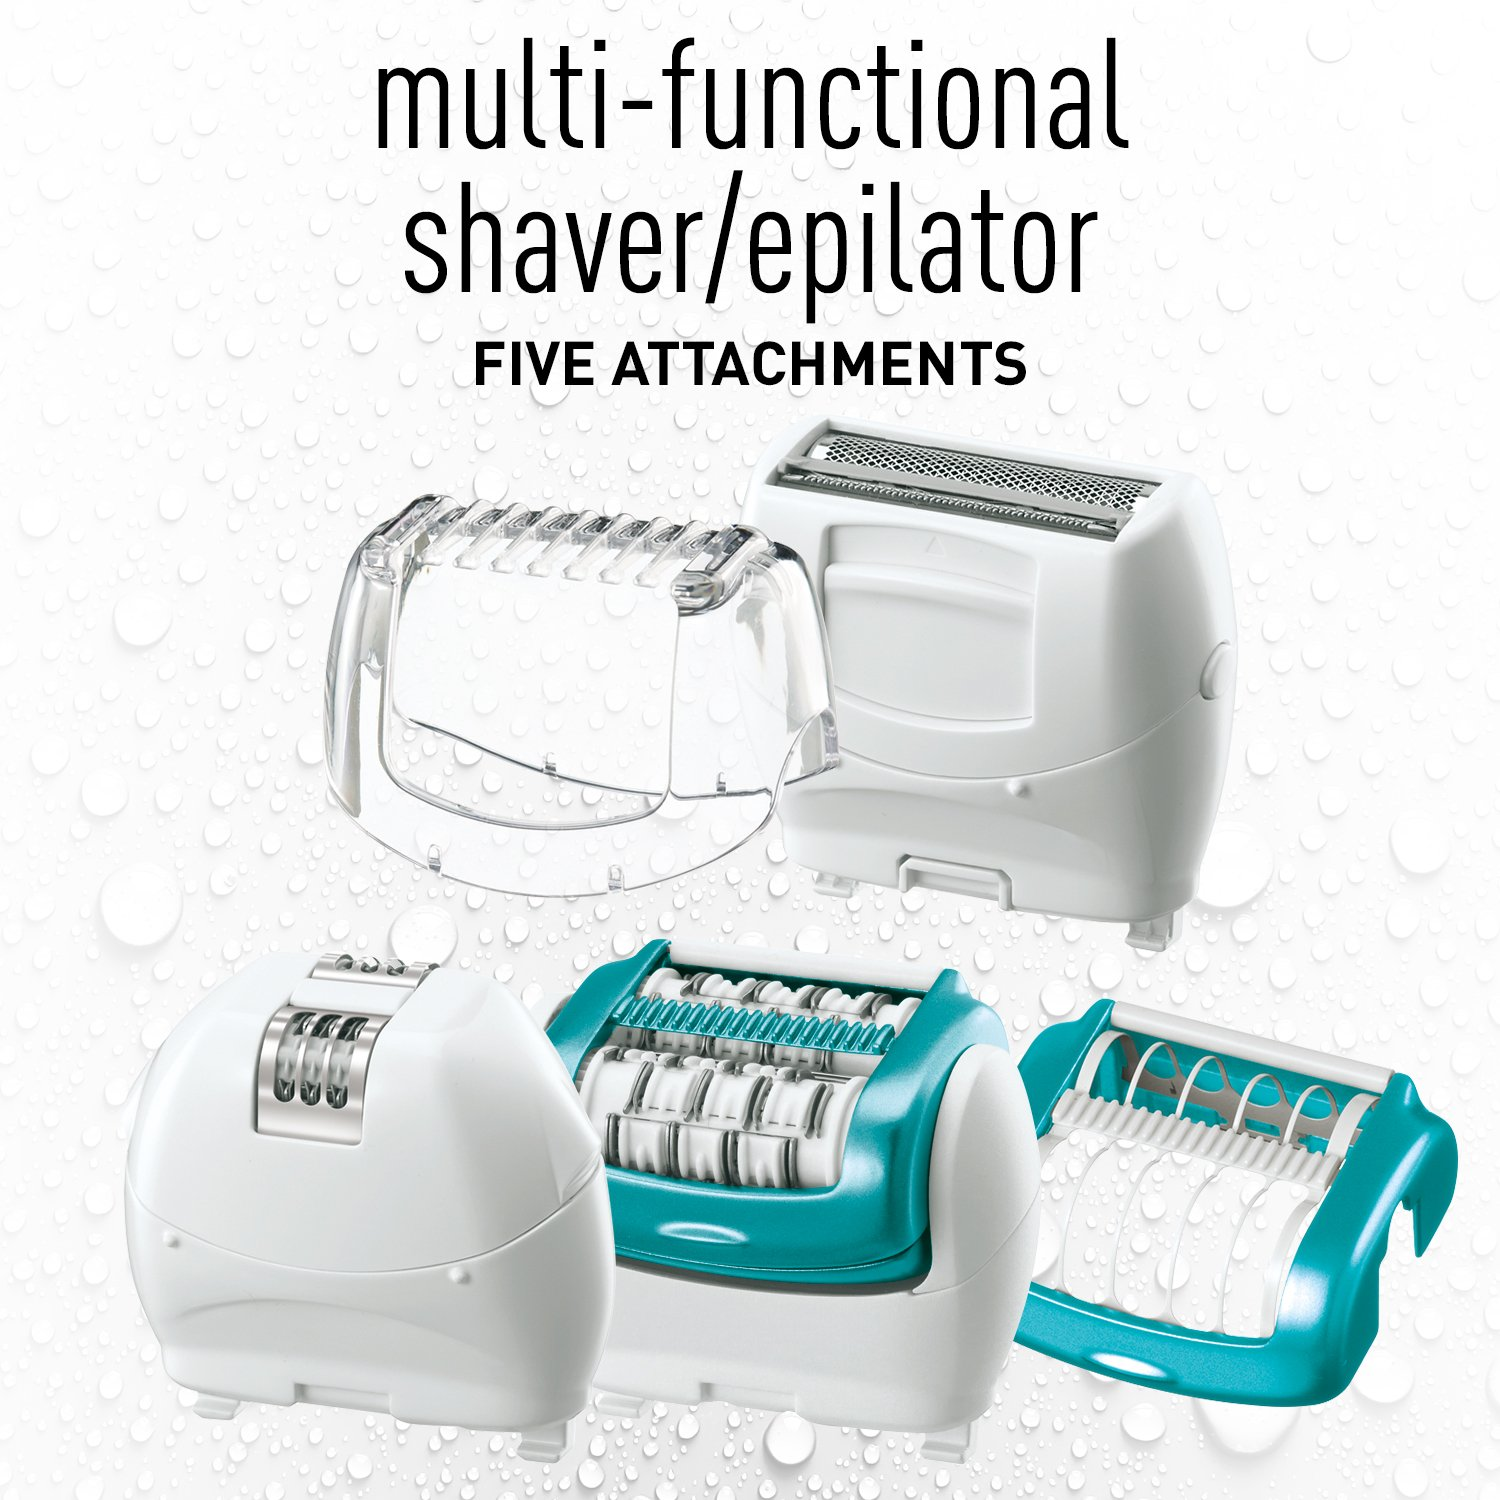 Panasonic ES-ED70-G Multi-Functional Wet/Dry Shaver and Epilator for Women, with Five Hair Removal Attachments and Travel Pouch by Panasonic (Image #1)